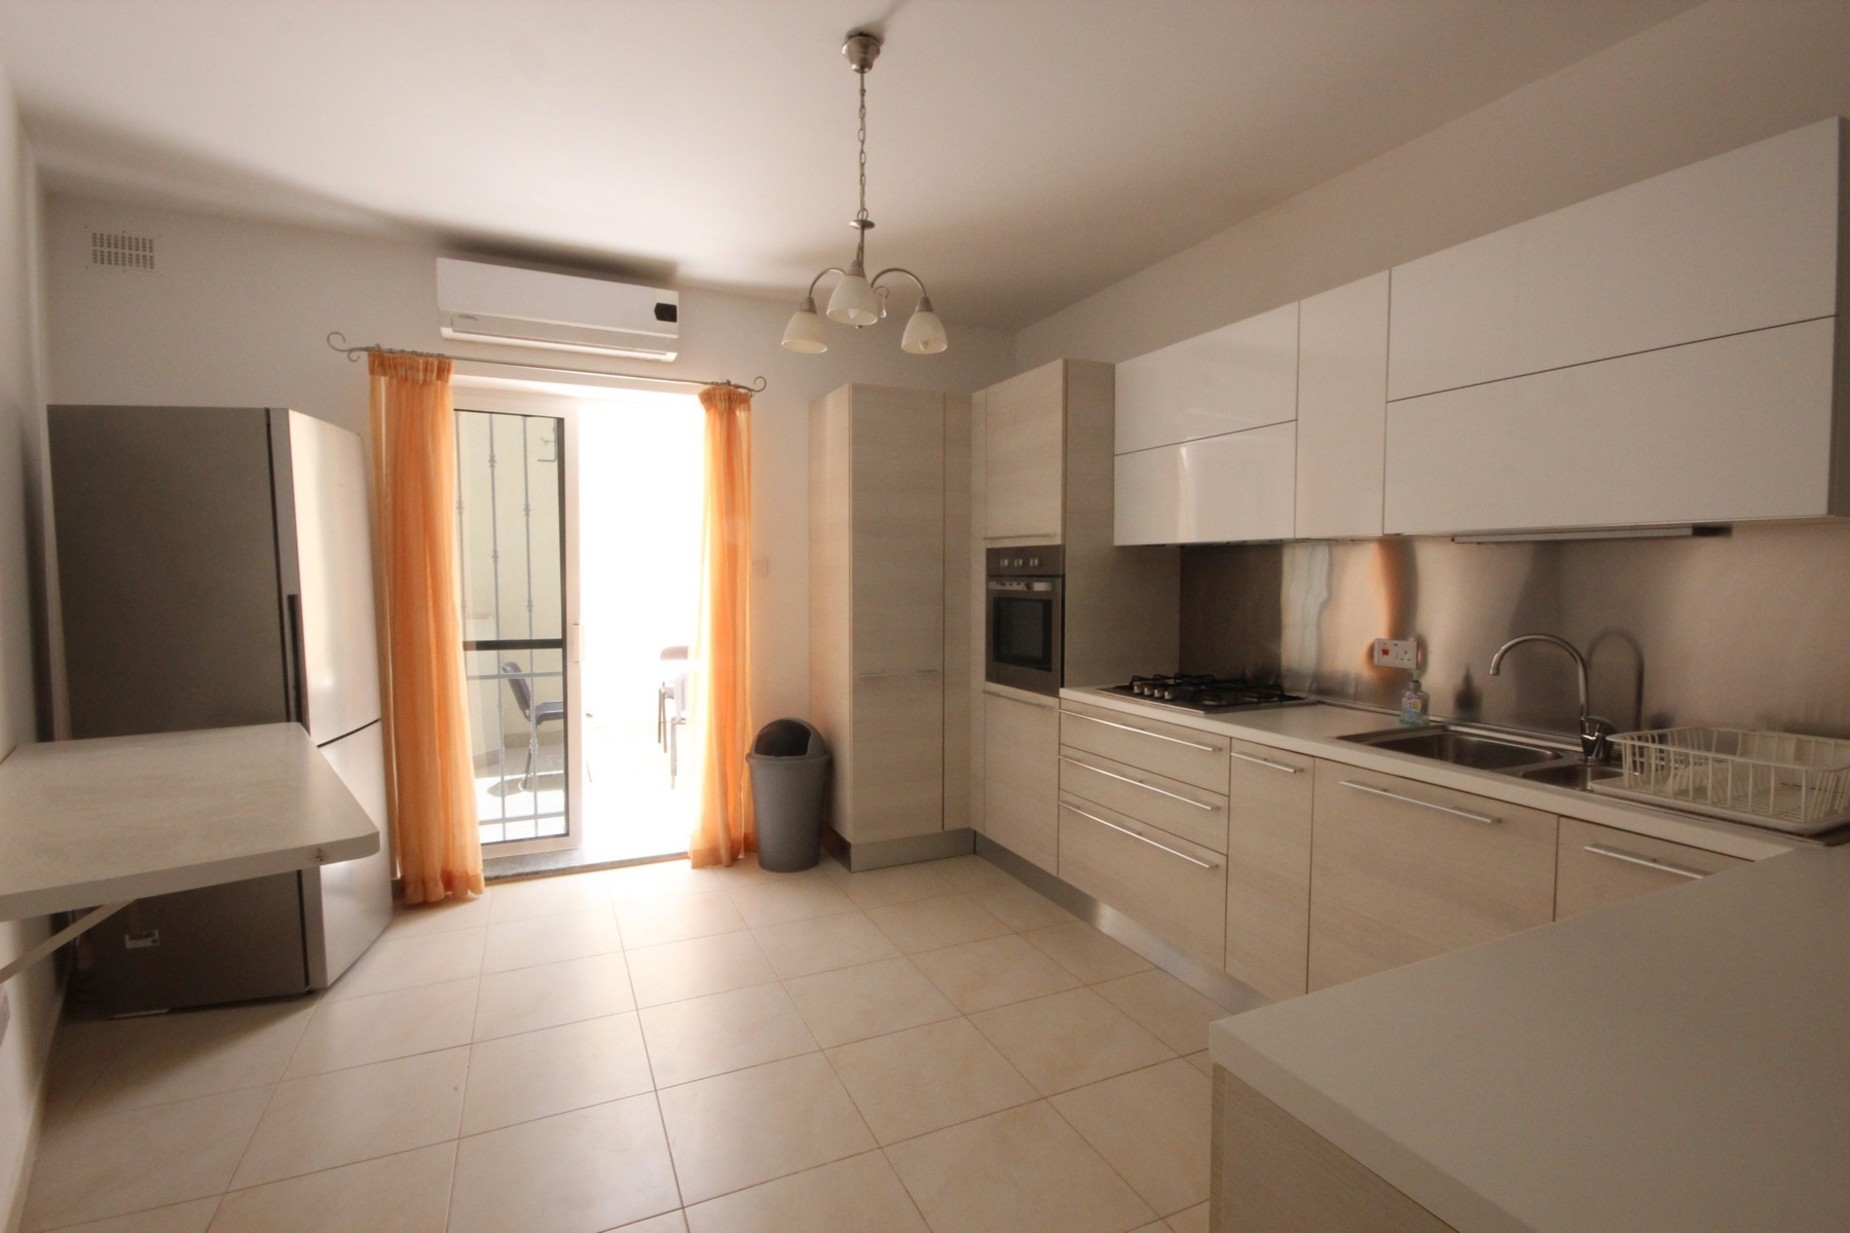 3 bed Maisonette For Rent in Sliema, Sliema - thumb 2